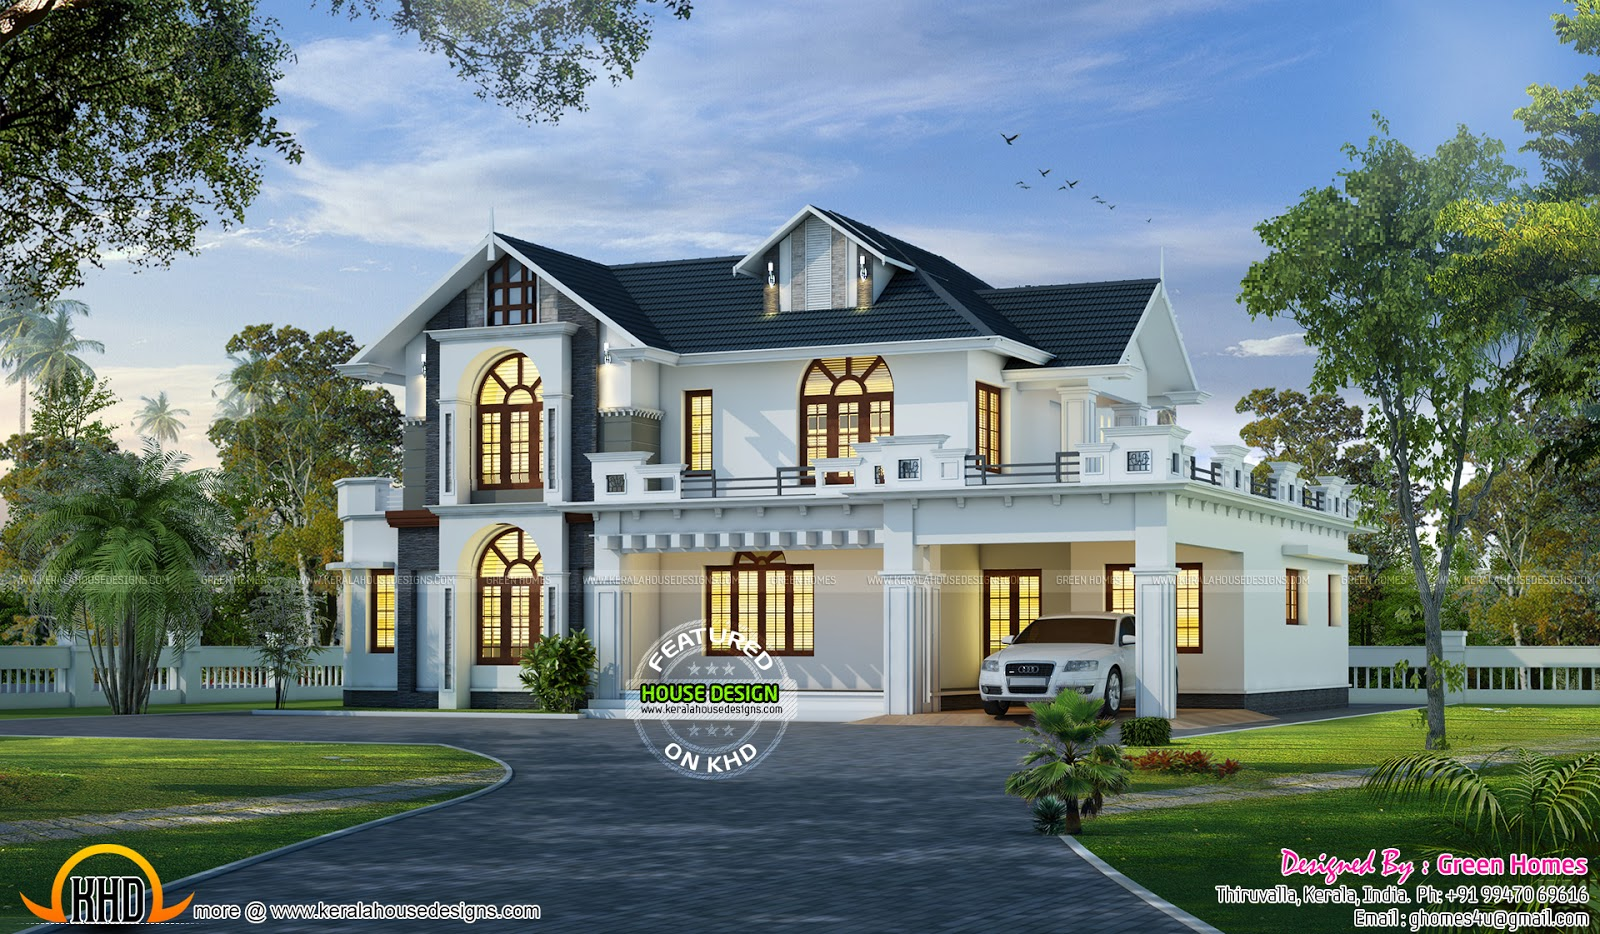 Wonderful house design kerala home design and floor plans for Www home